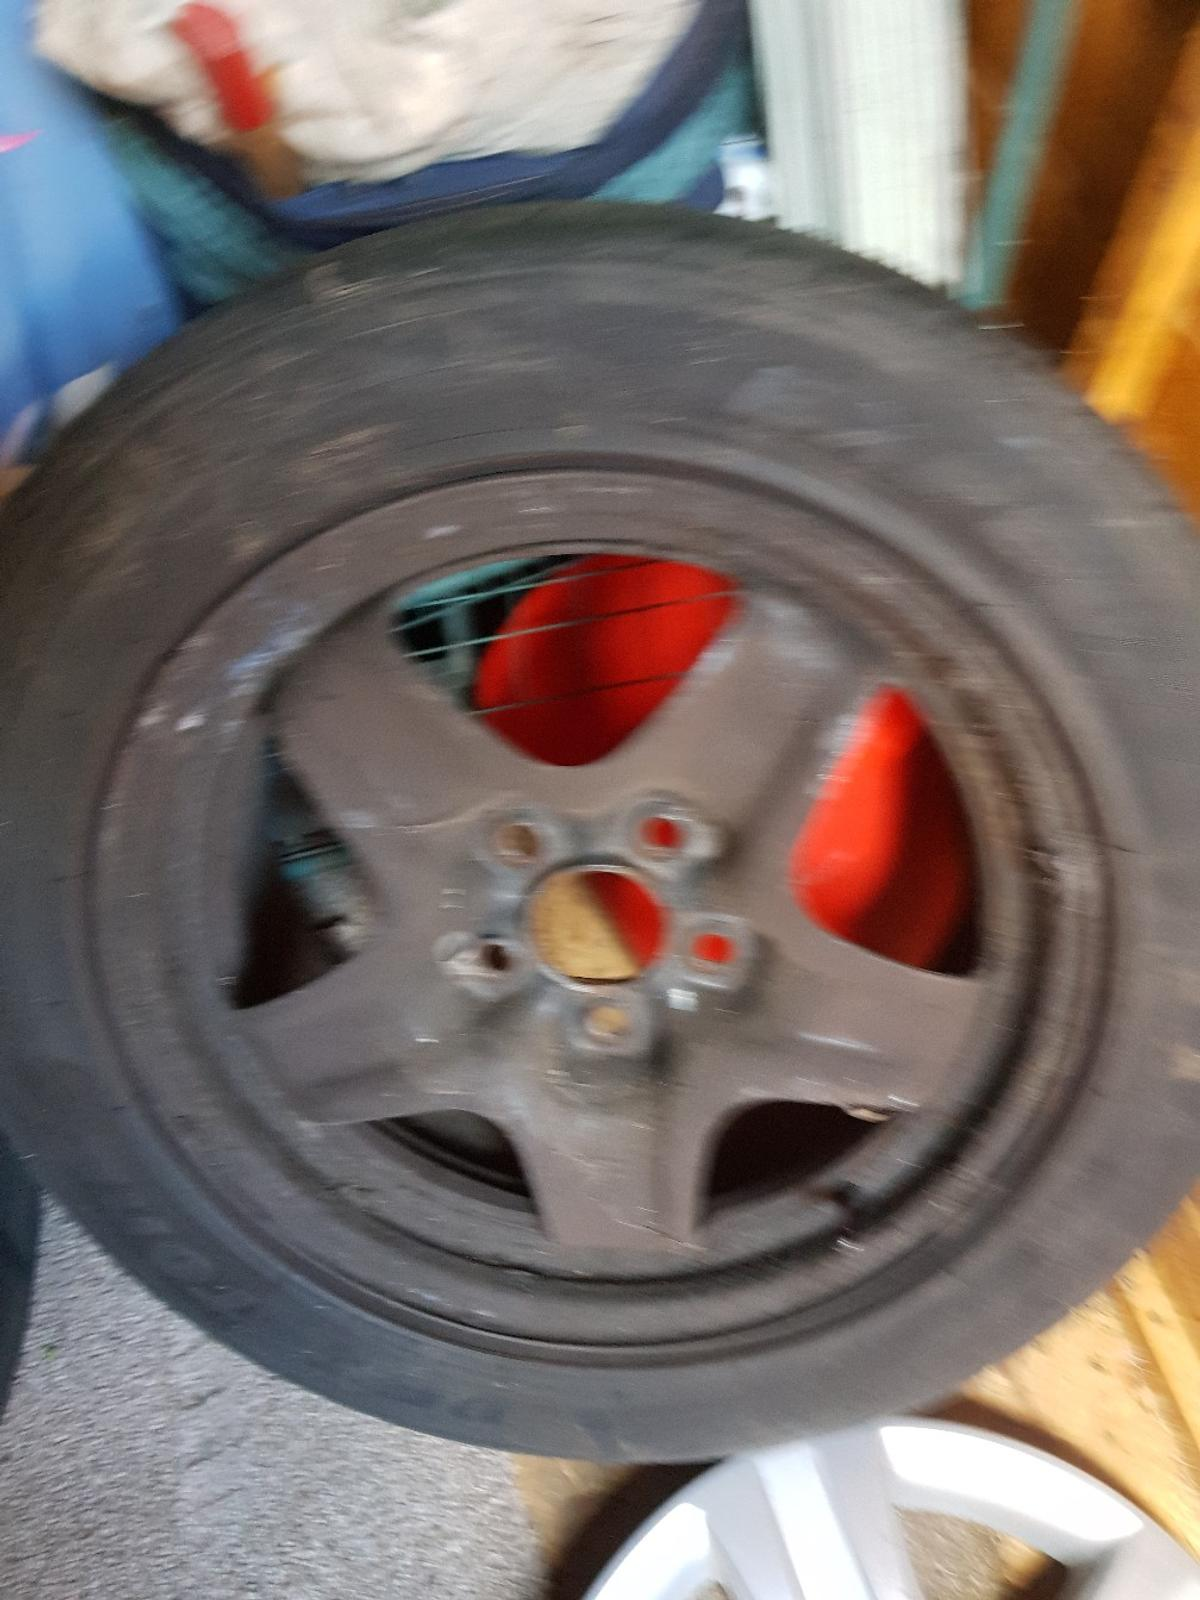 2x 16565x13 tyres on ford steel rims